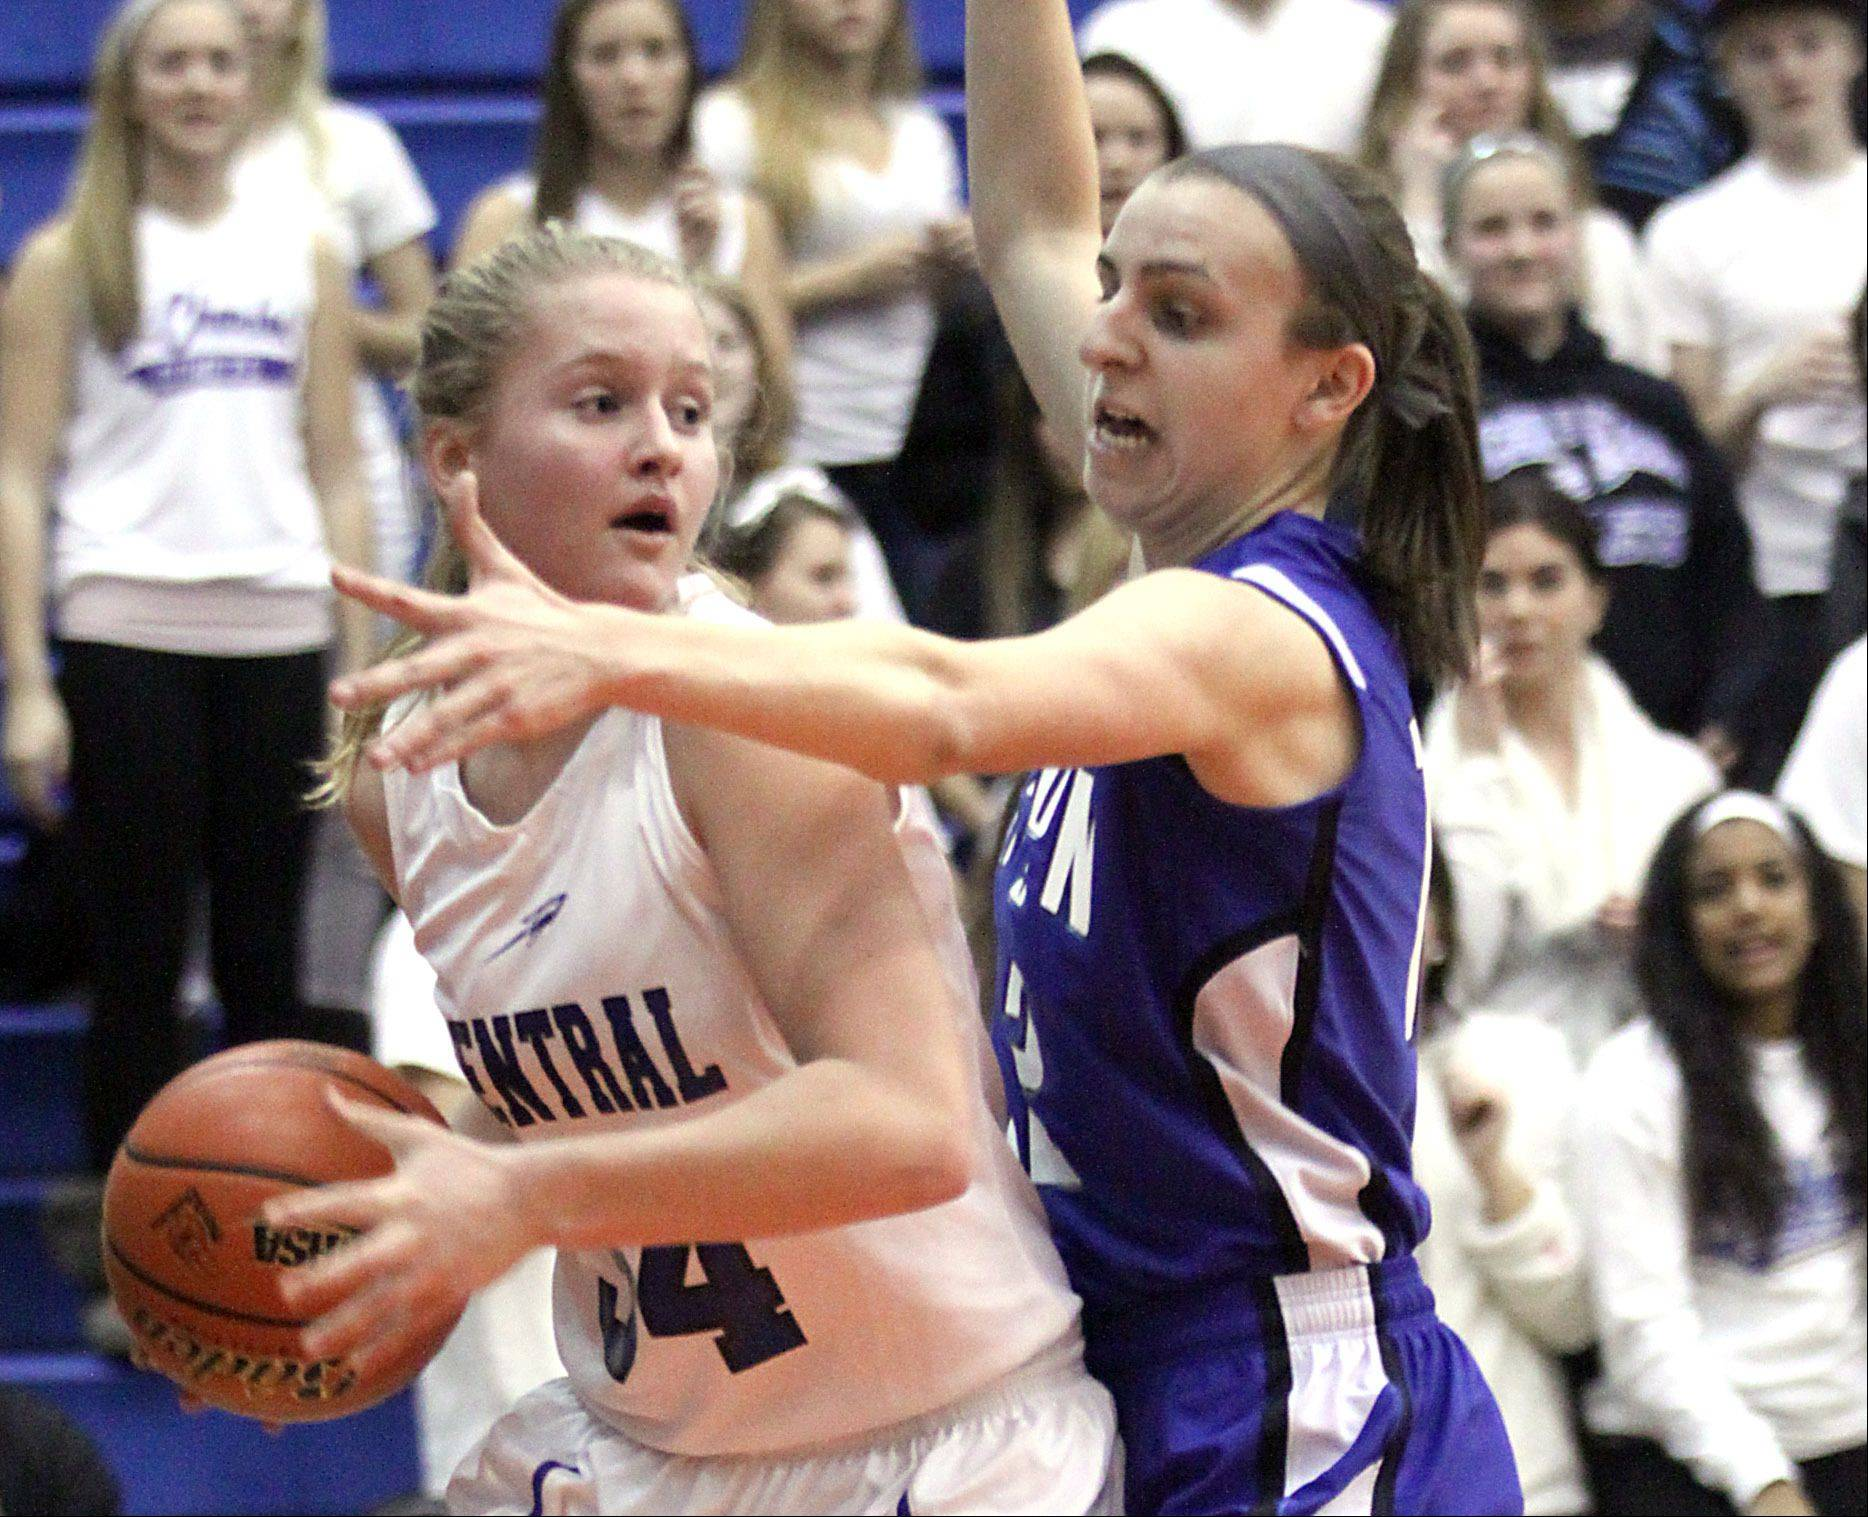 Burlington Central's Samantha Pryor, left, looks to get past Vernon Hills' Alina Lehocky, right, during a Class 3A supersectional title game at Hoffman Estates High School on Monday night. Central lost 39-31 to Vernon Hills.